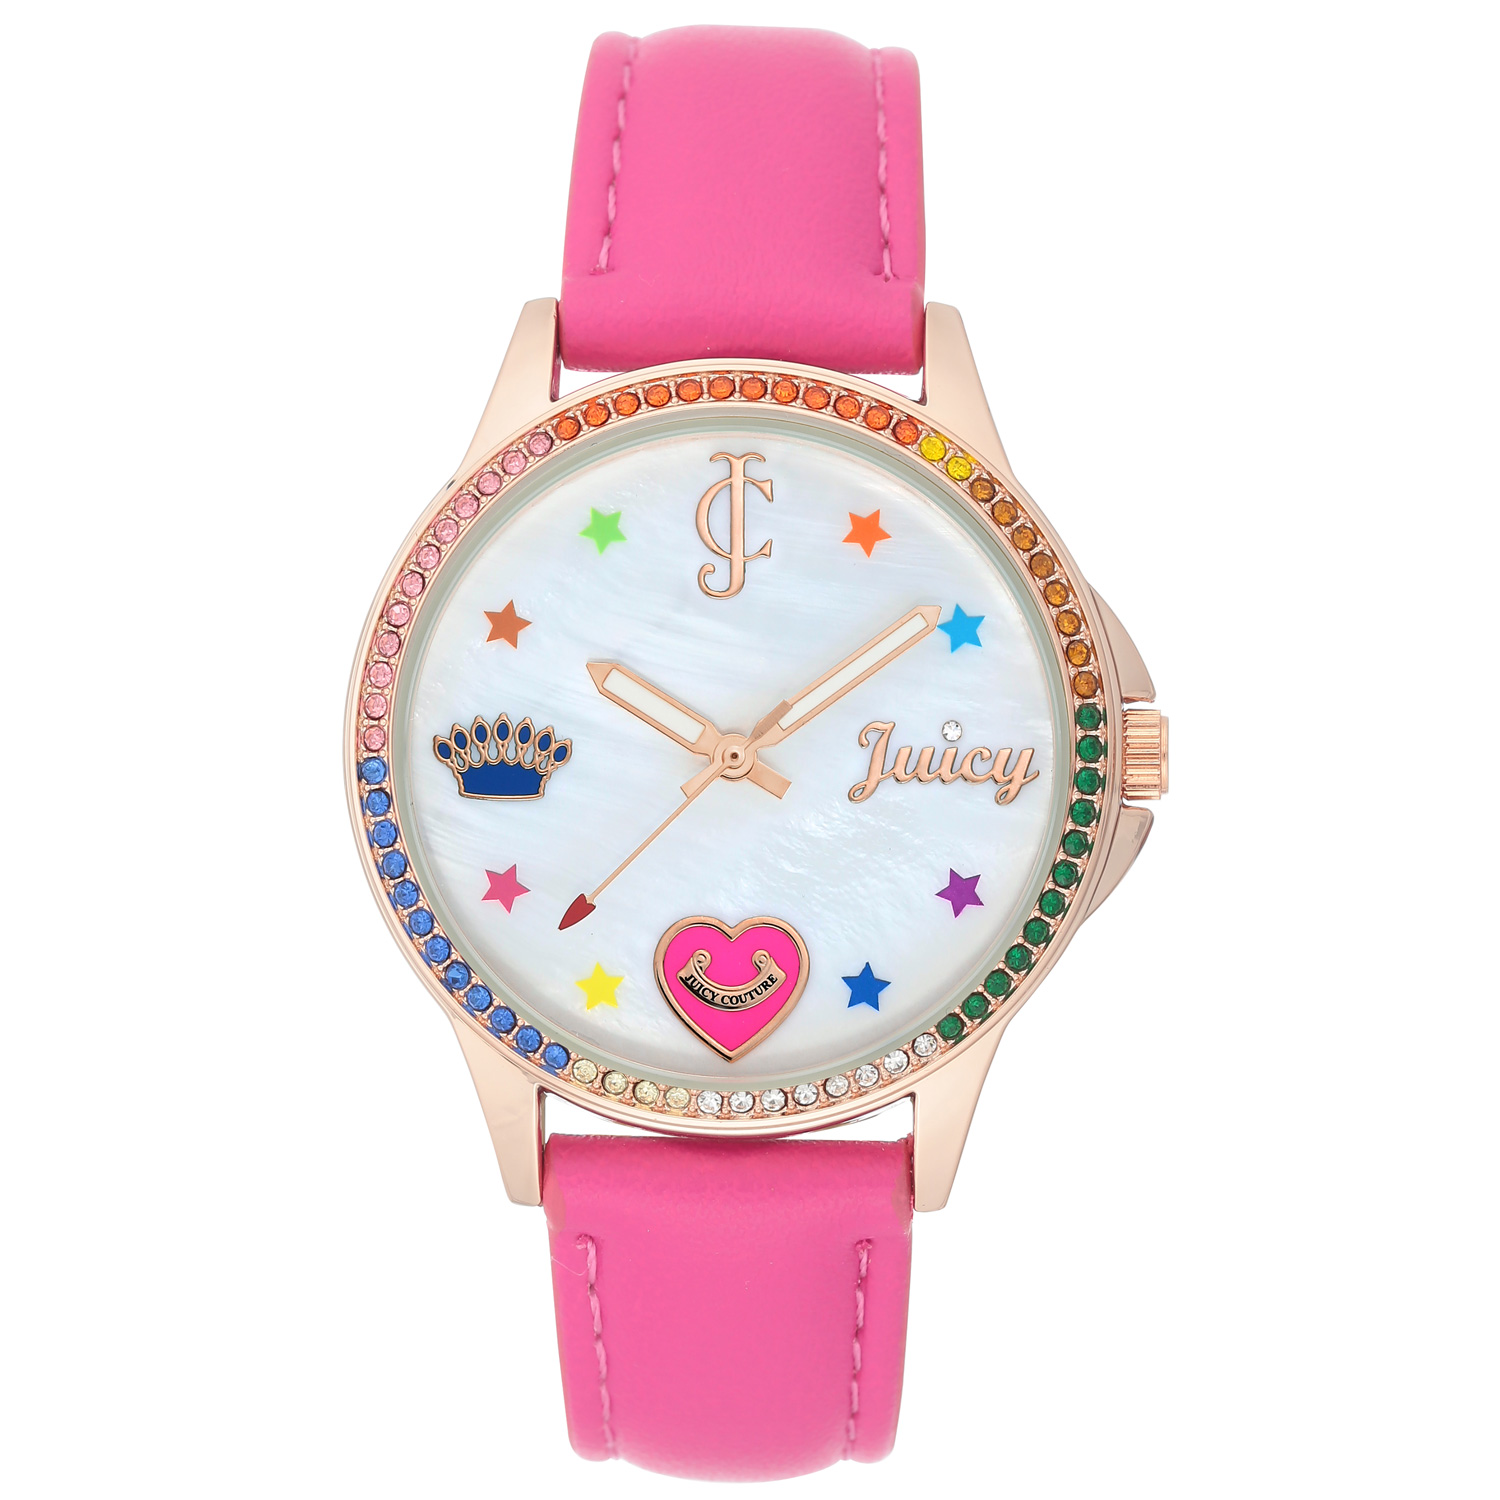 Juicy Couture Watch JC/1106RGHP Pink